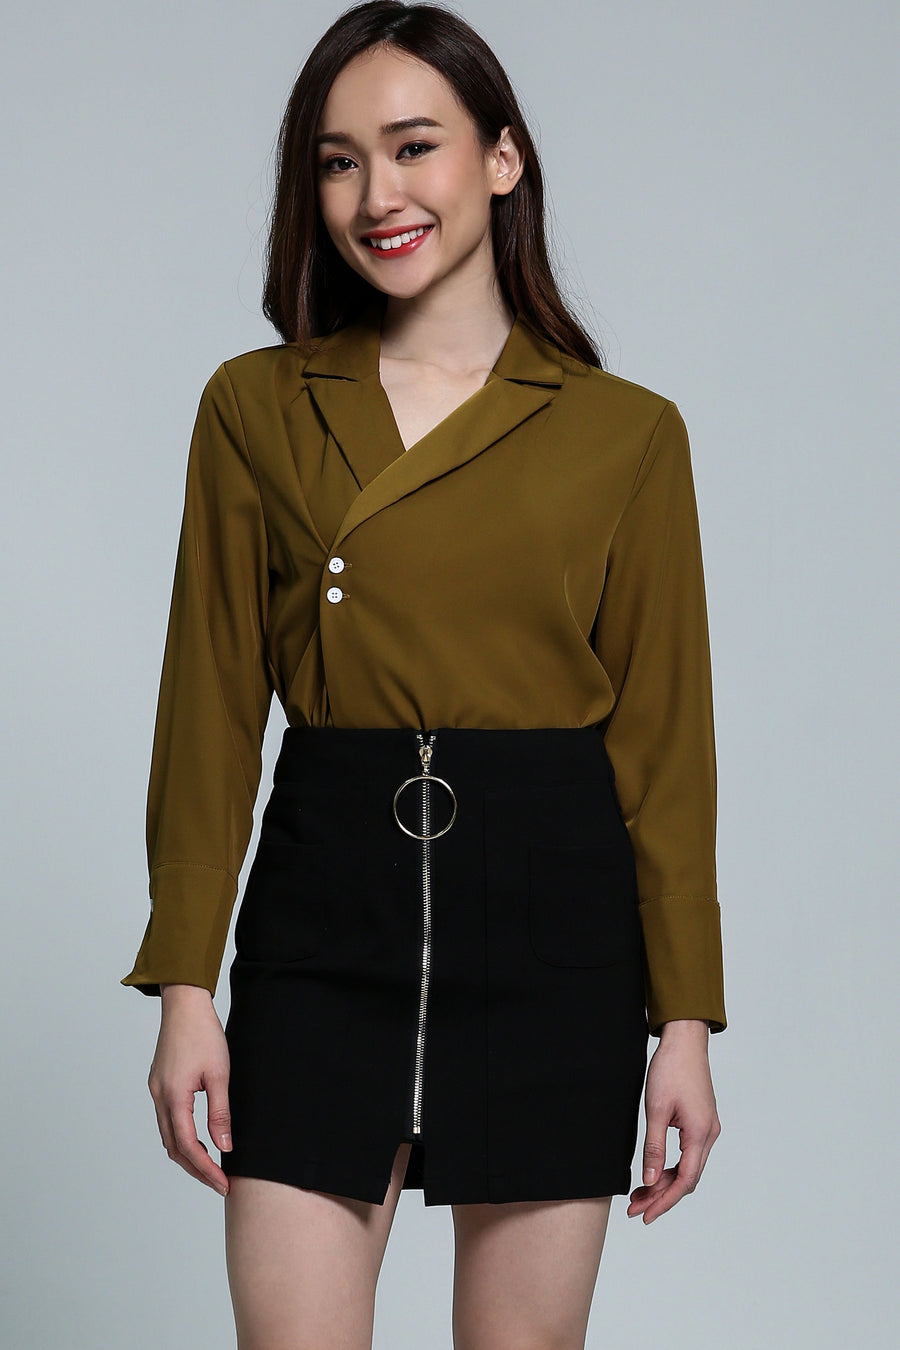 V-Neck Collar Top With Button Detail  2111 Green Tops